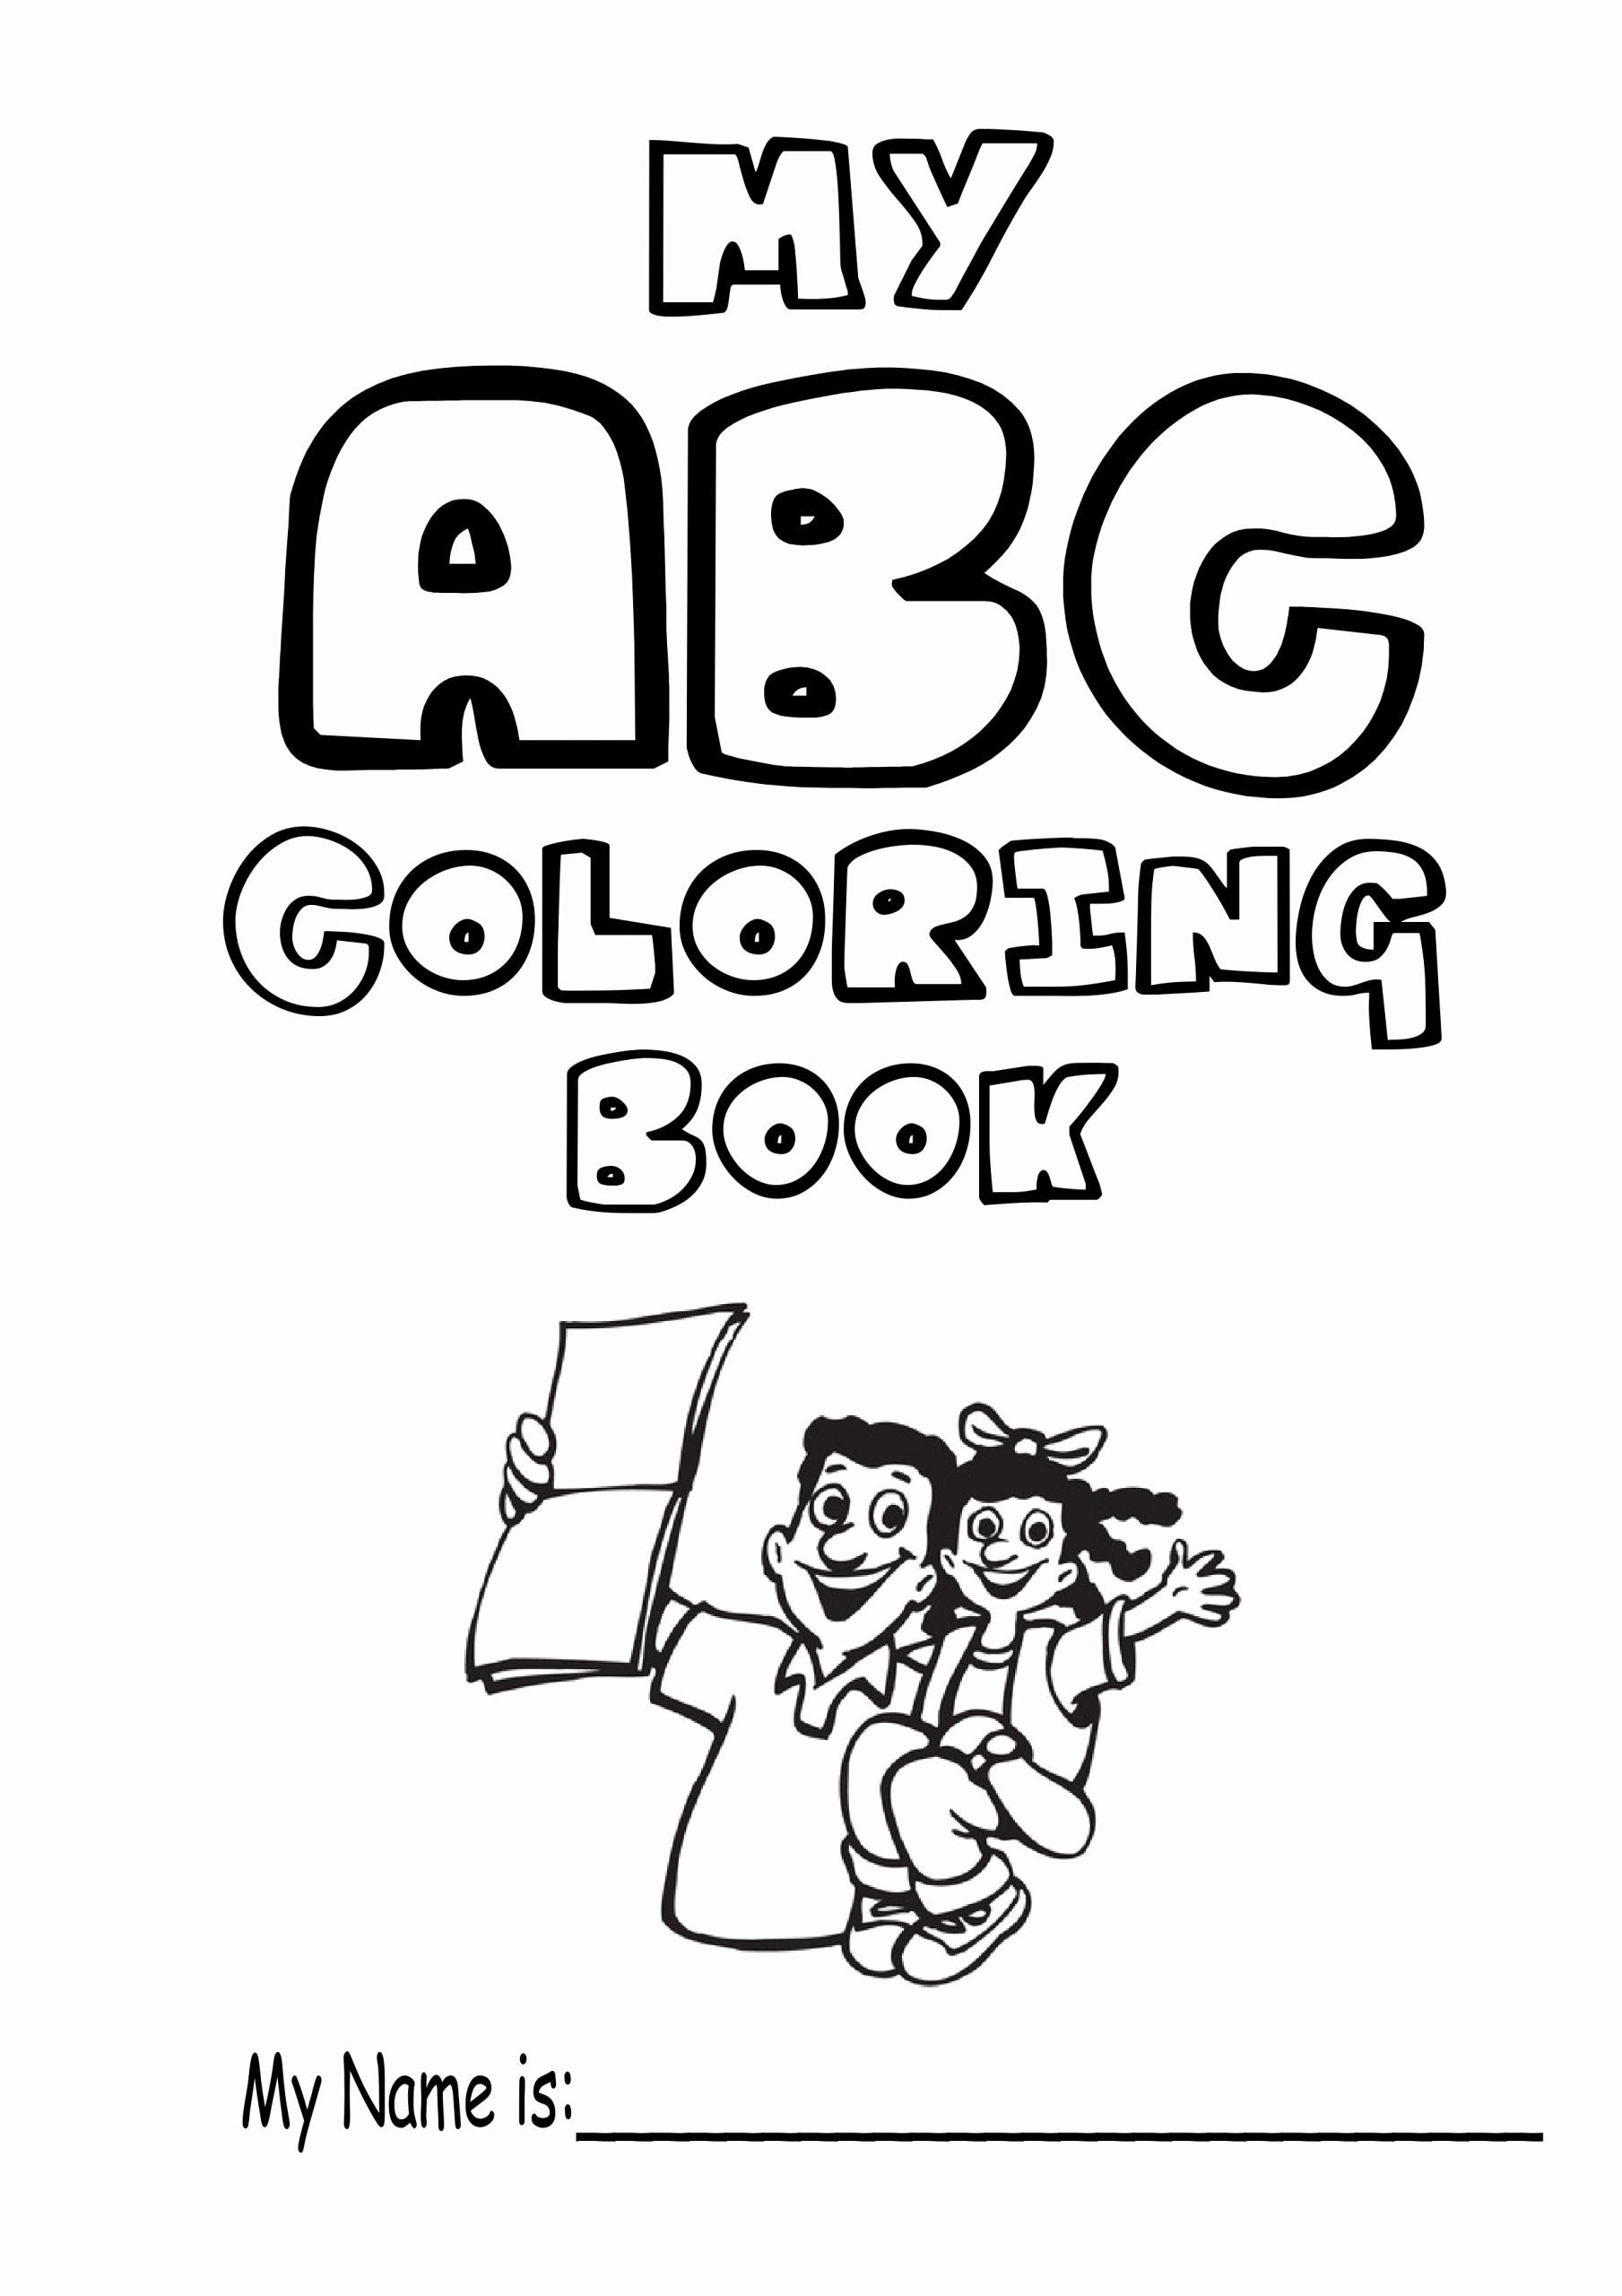 Cartoon Coloring Book Pdf Download Best Of Coloring Coloring Book Free Download Chance The Rapper In 2020 Abc Coloring Pages Abc Coloring Alphabet Coloring Pages